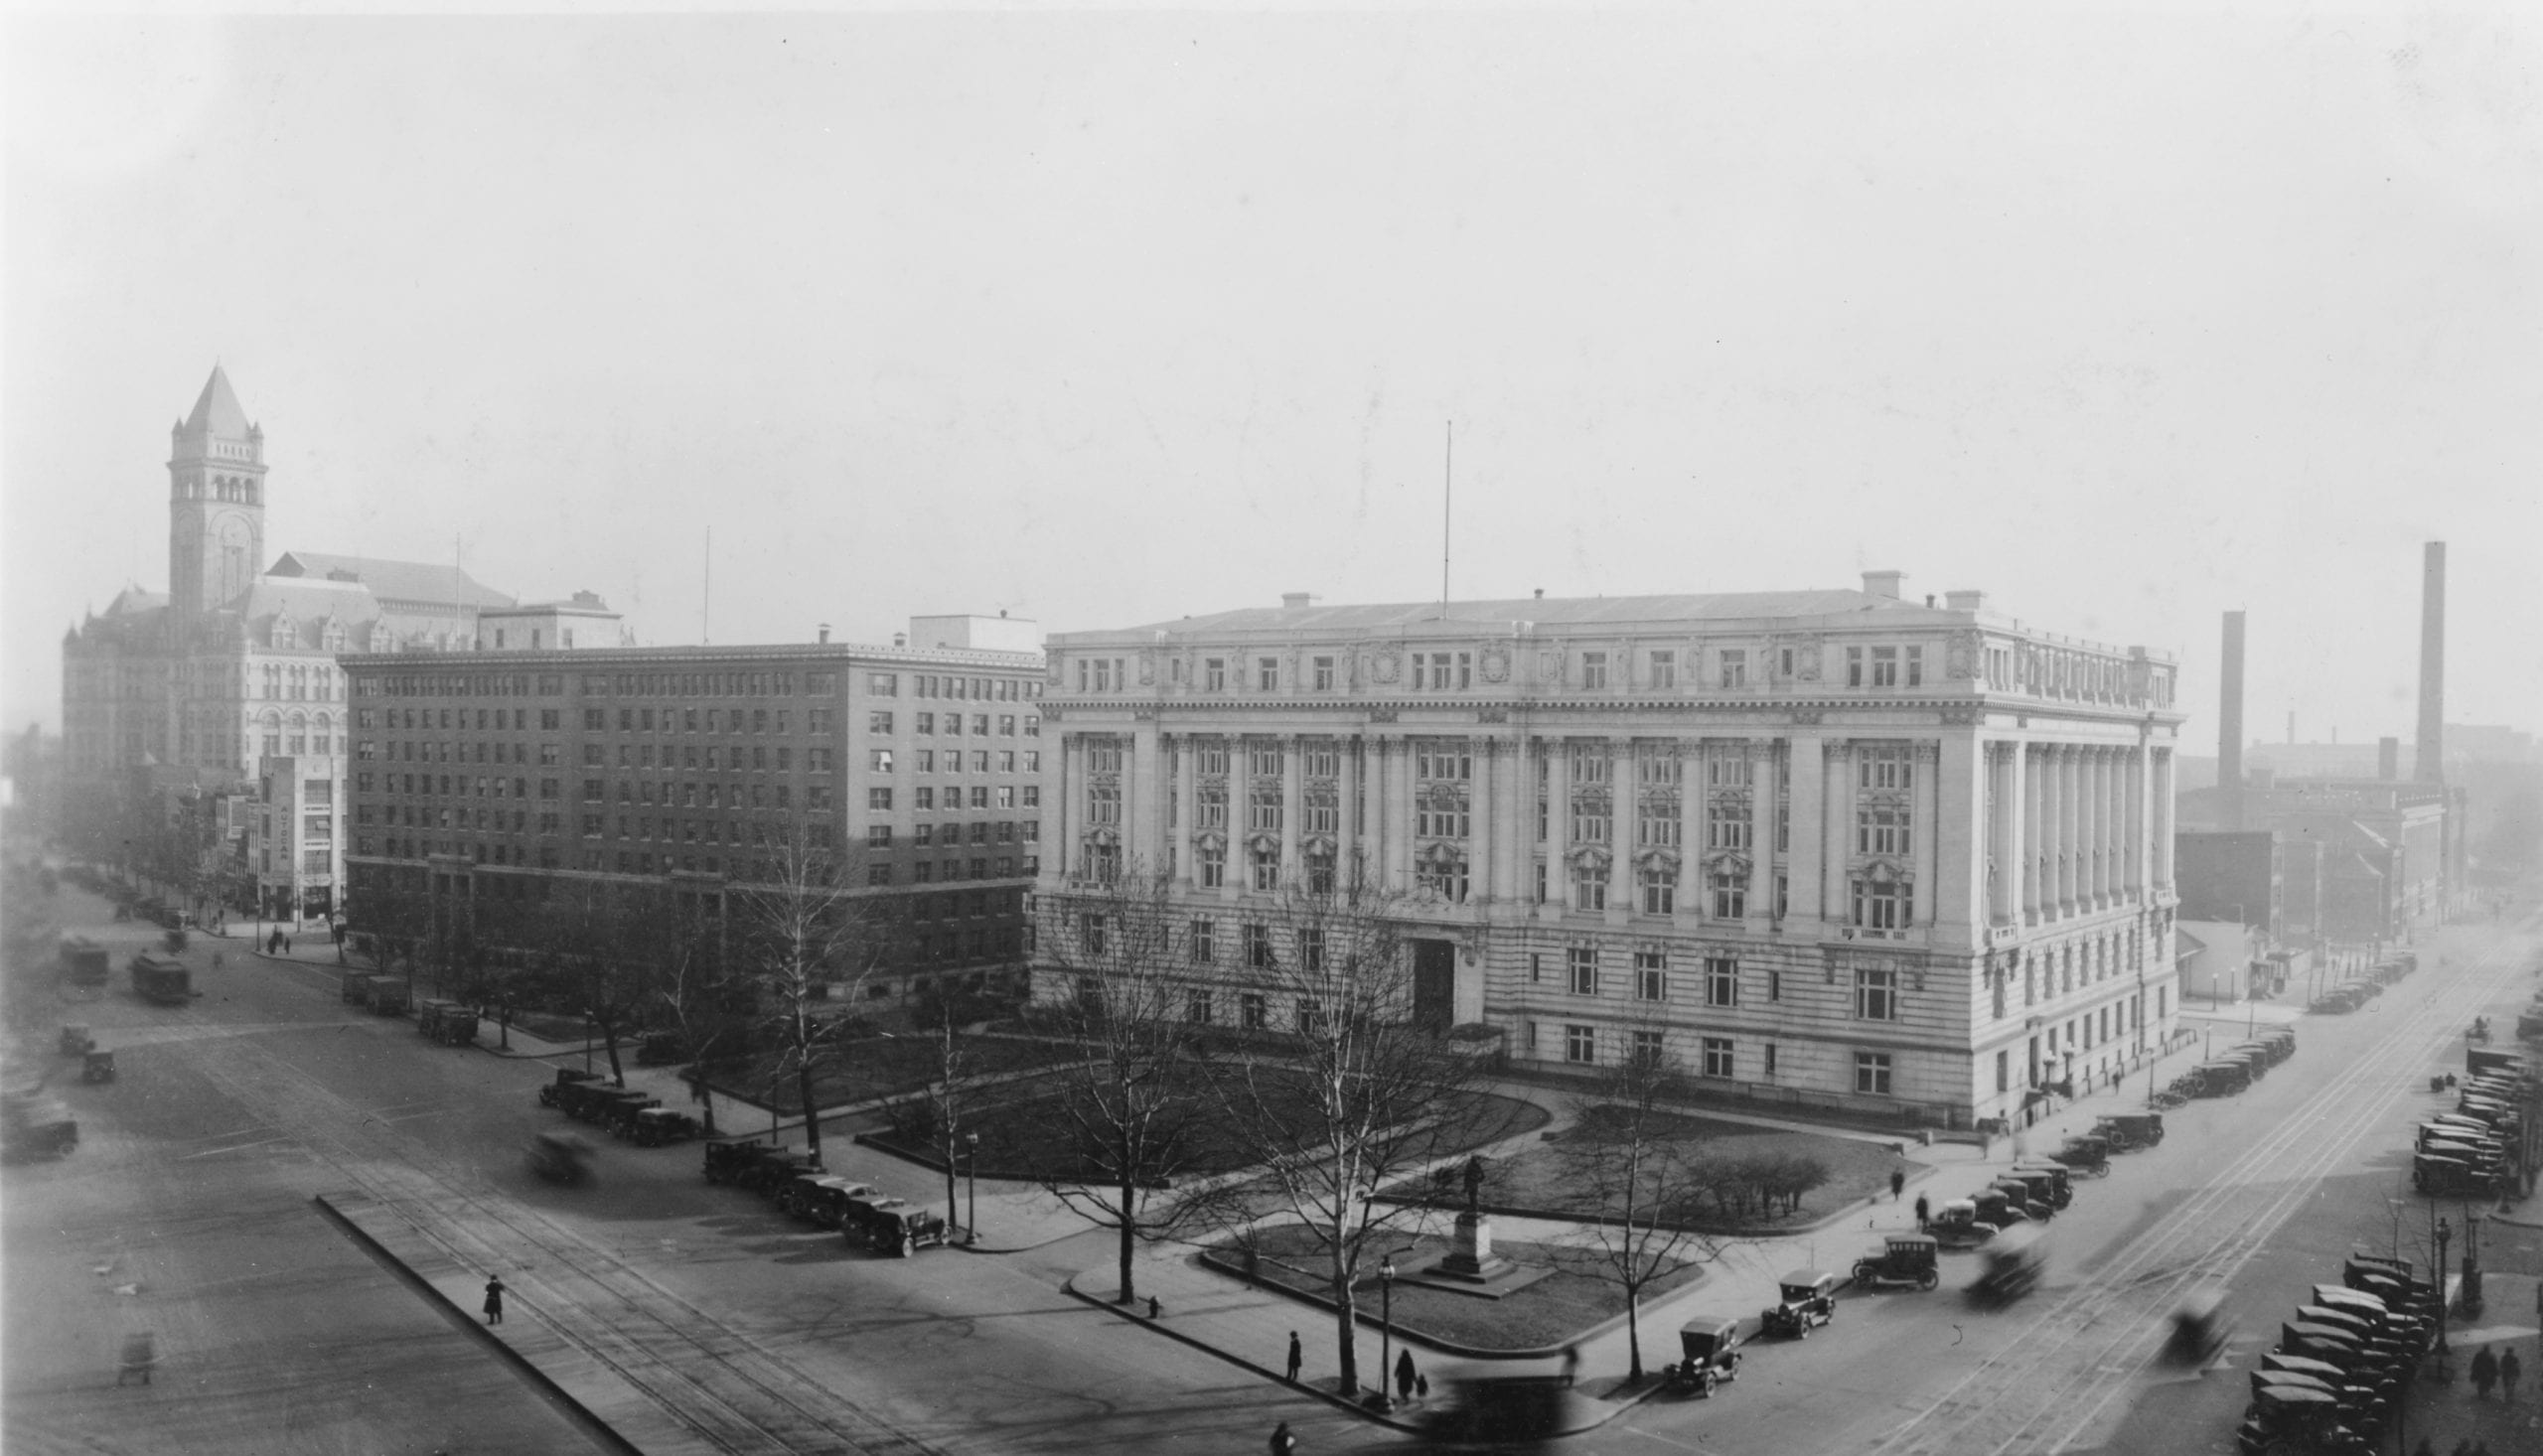 Looking southwest at the Old Post Office Pavilion (far left), Southern Railway Building (middle), and District Building on Pennsylvania Avenue NW in Washington, D.C., in 1932. On in the fall of 1932, the structures in rear of the District Building would be razed to make way for the U.S. Department of Labor building, whose cornerstone would be laid on December 15, 1932